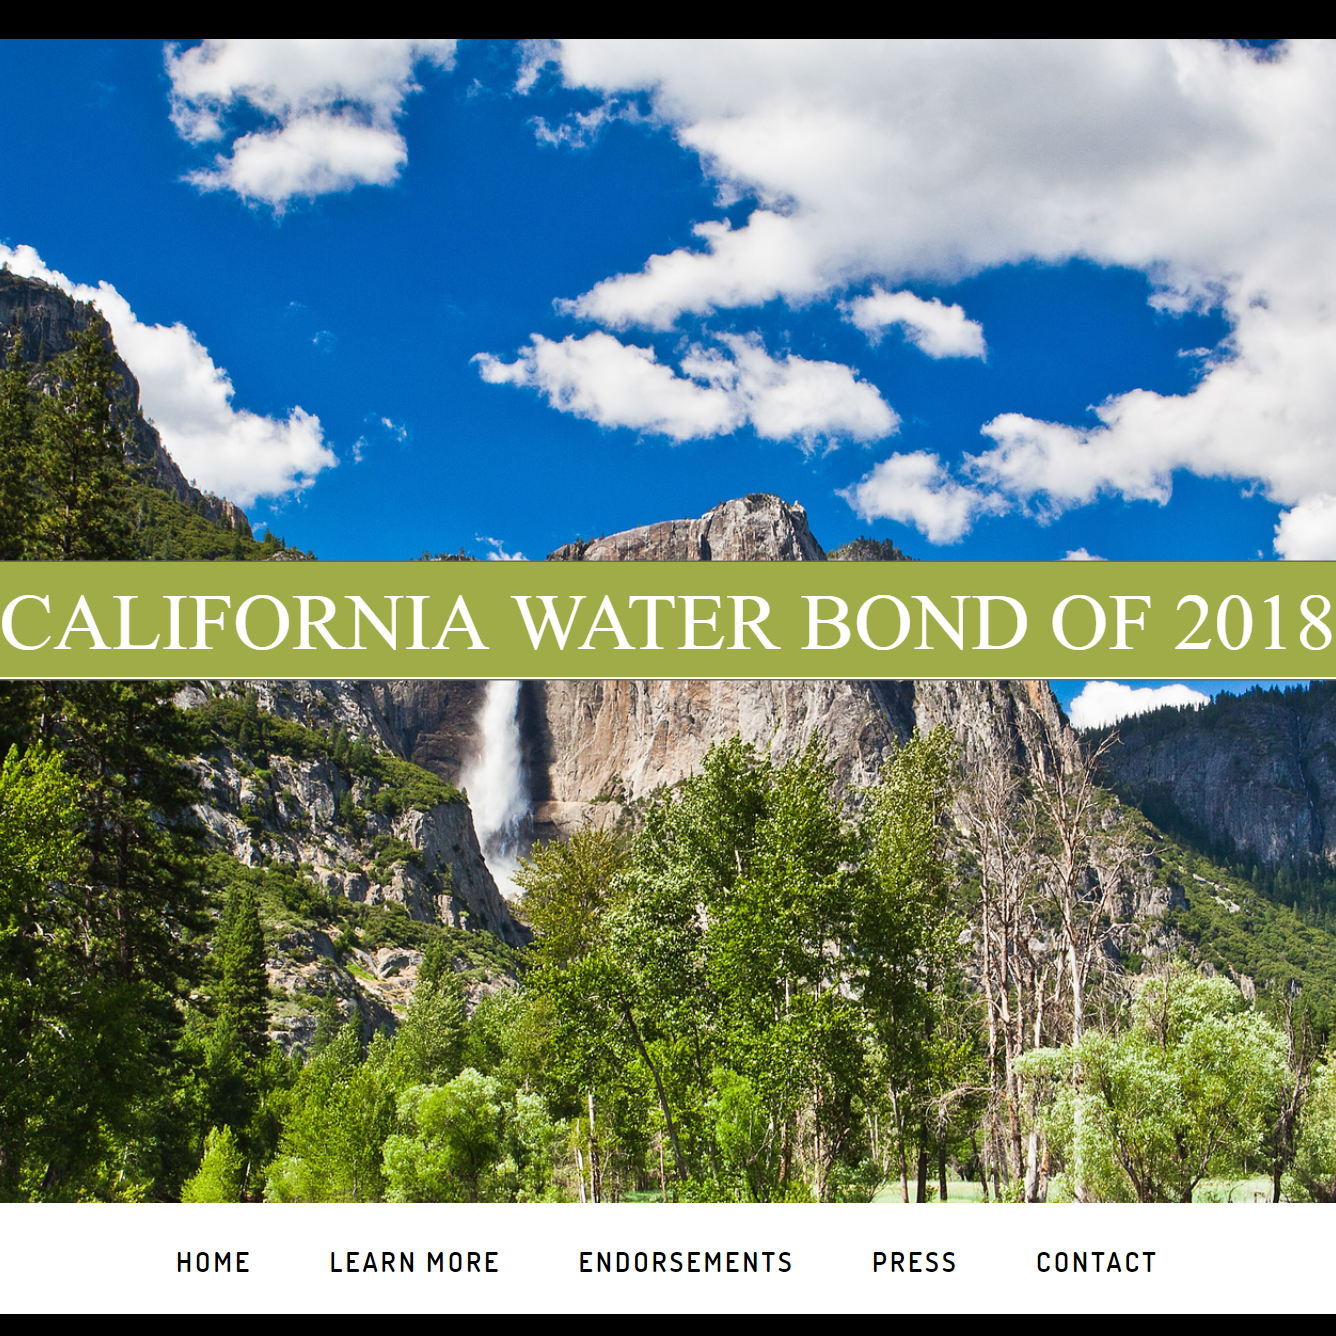 California Water Bond of 2018